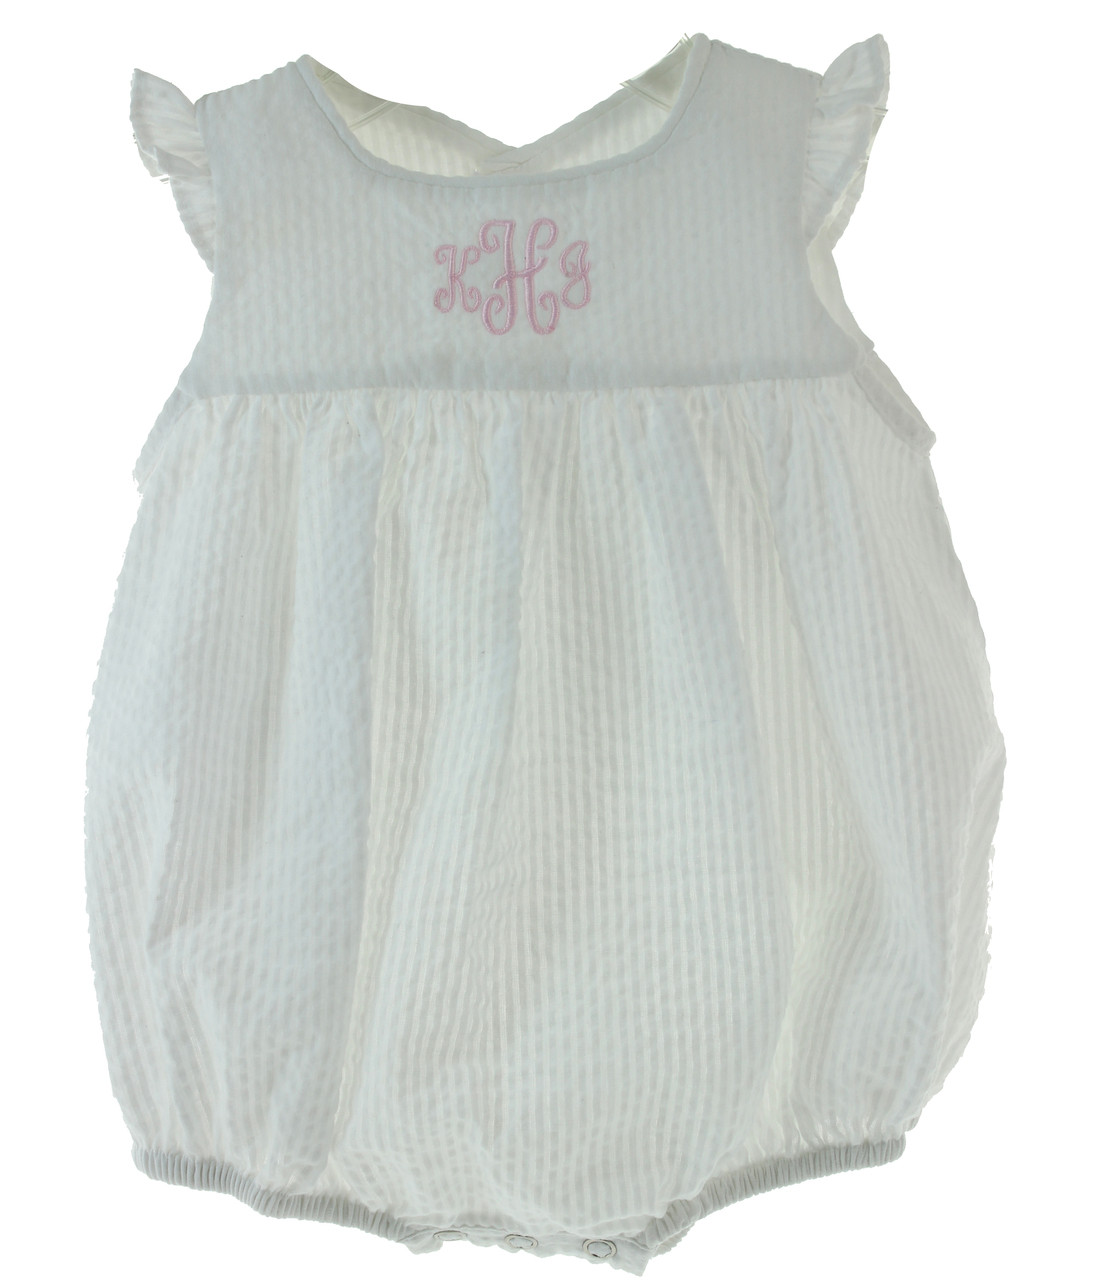 0ba3b8187 Baby Girls White Seersucker Sleeveless Bubble Outfit - Hiccups ...